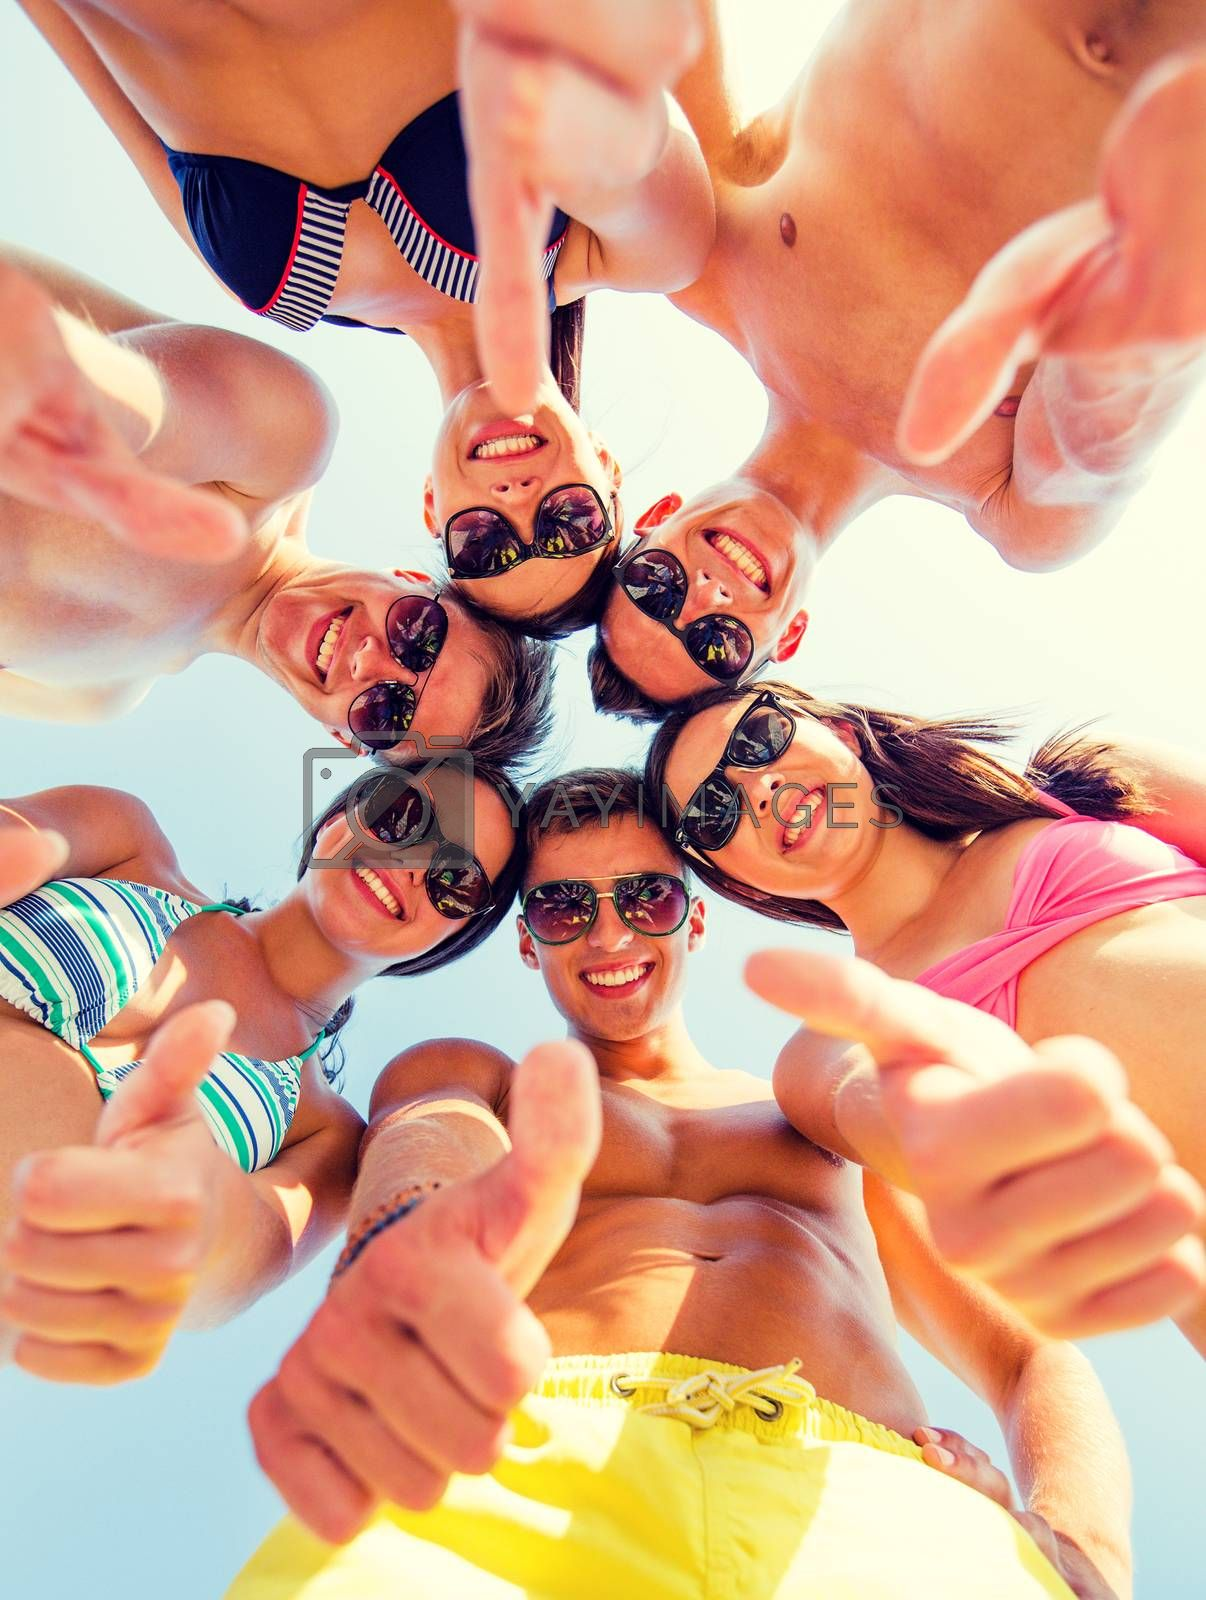 Royalty free image of smiling friends showing thumbs up in circle by dolgachov